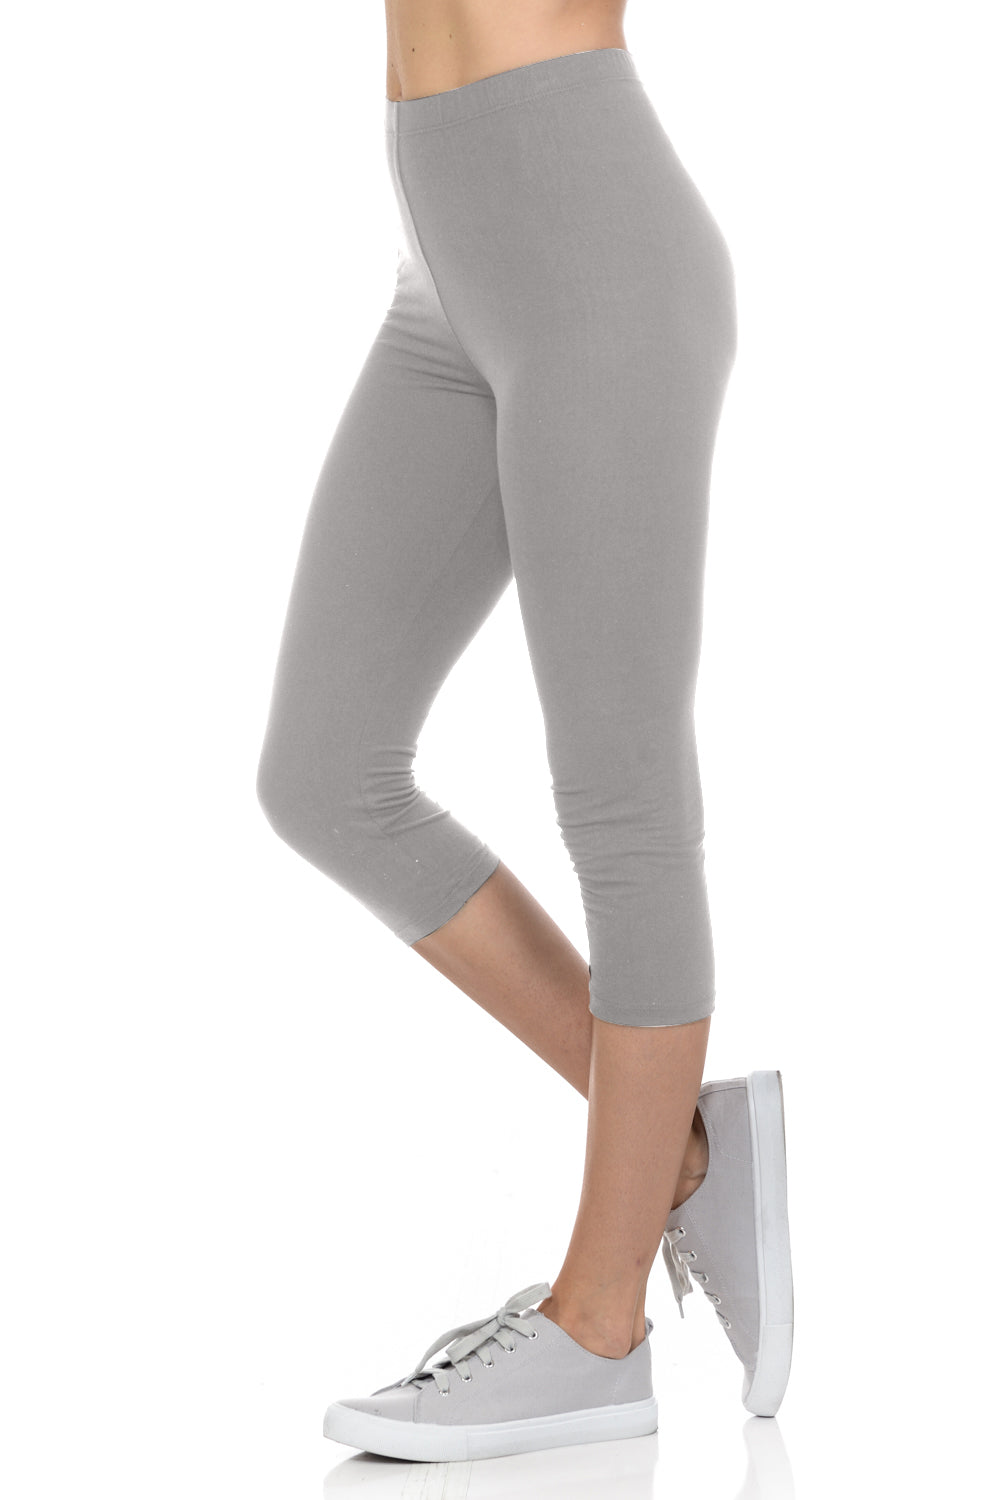 bluensquare Women's Capri Leggings Premium Soft and Stretched Cropped legging- Gray